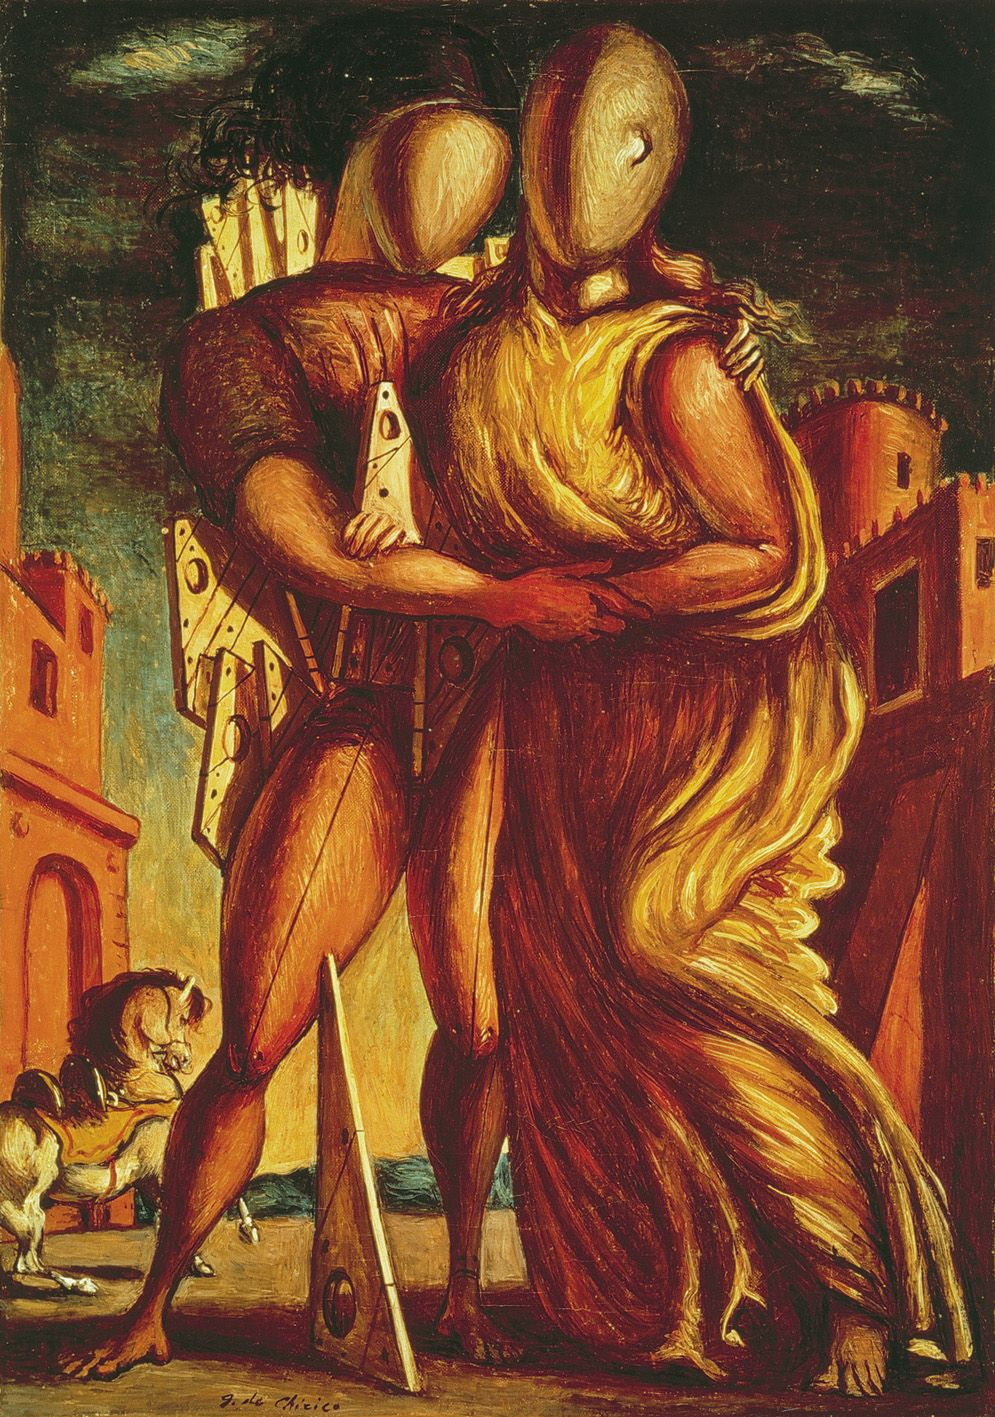 Giorgio De Chirico's Ettore e Andromaca (1935) ...something about this image captured my imagination when I was young, and I'm still captivated by it.